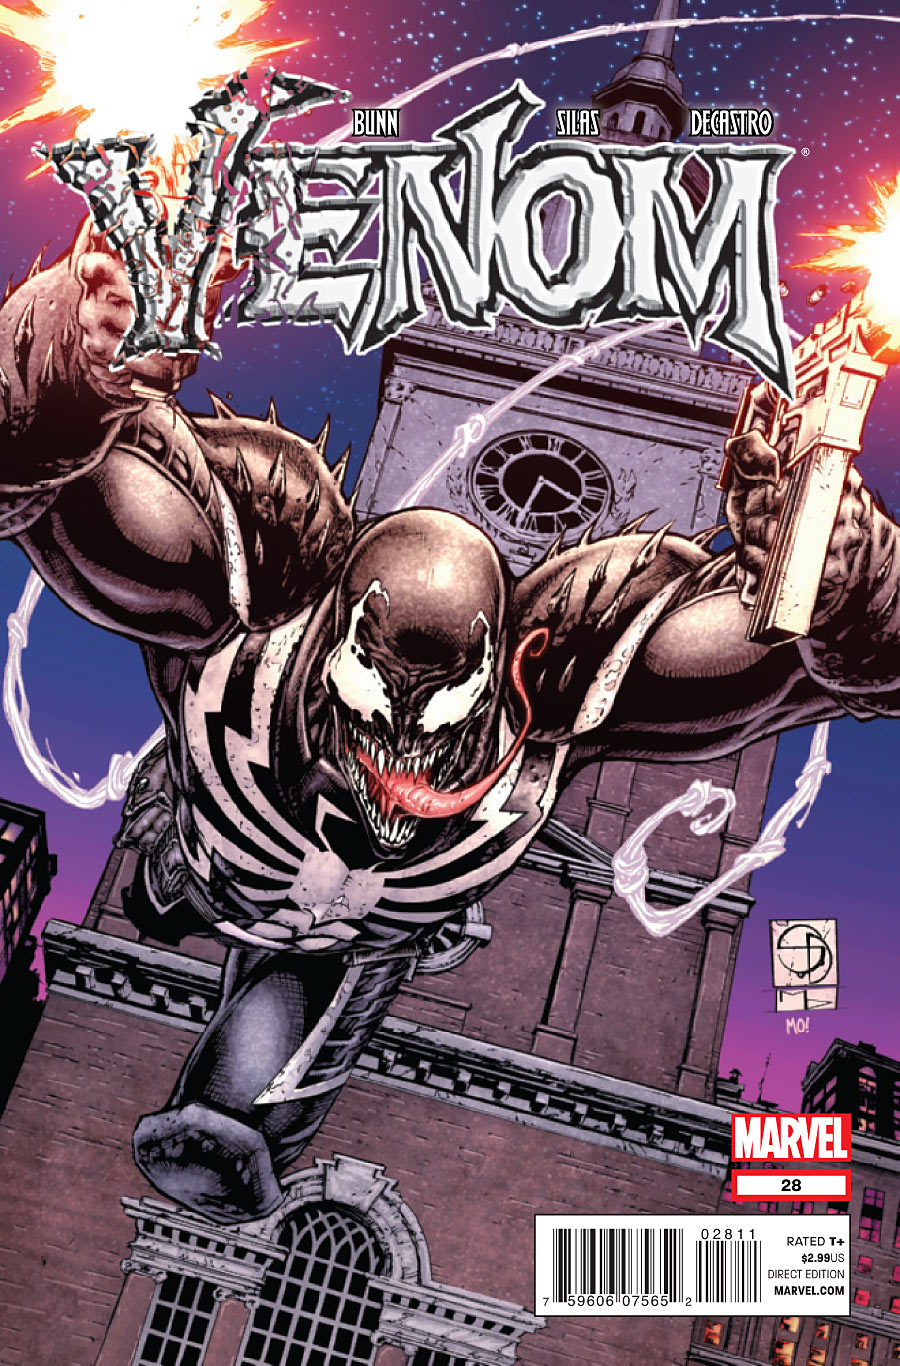 Venom 28 C Venom #28 Review